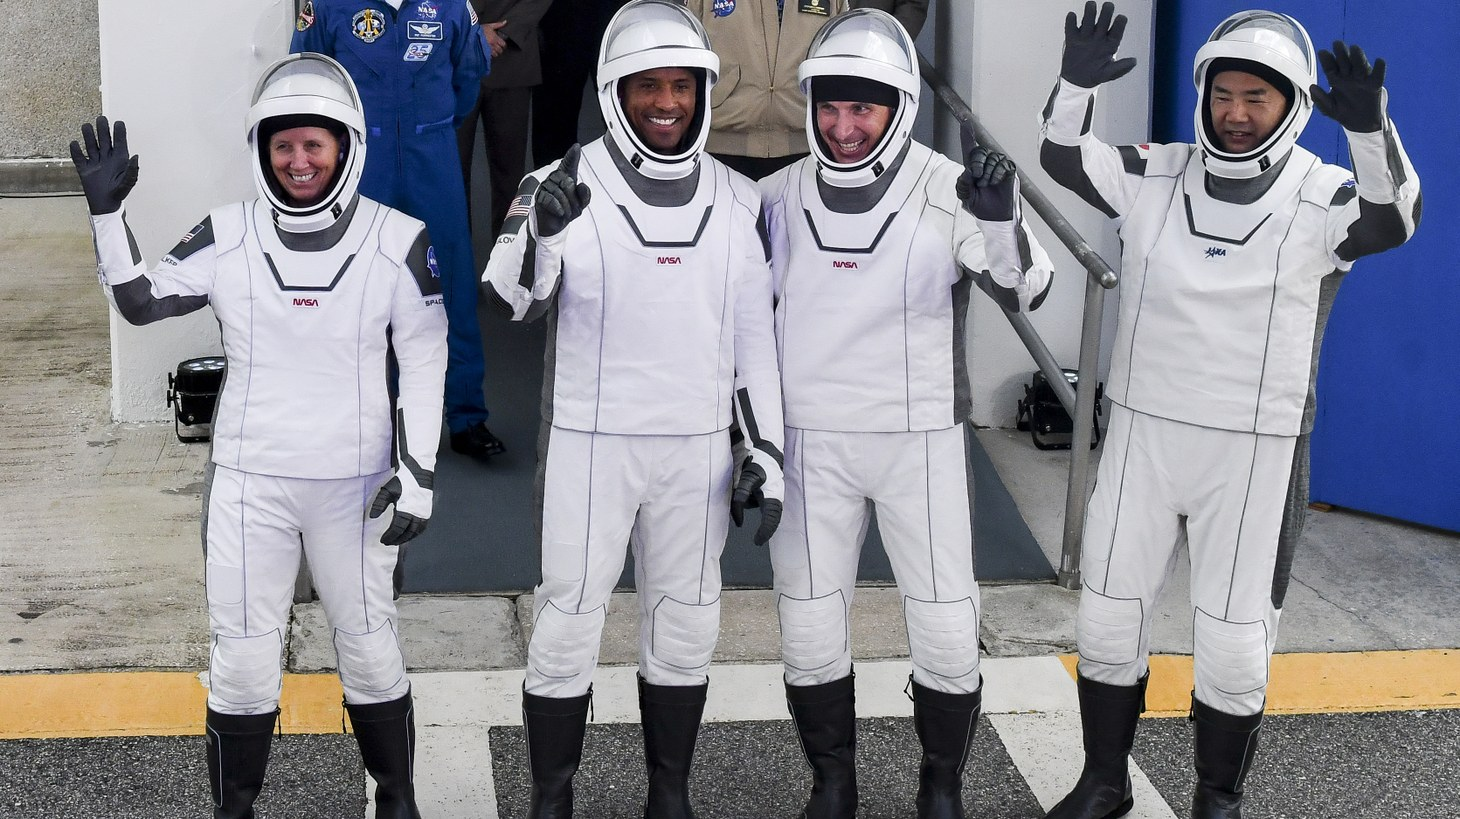 SpaceX Crew-1 astronauts Shannon Walker, Victor Glover, Michael Hopkins and Soichi Noguchi wave to the crowd before heading to the launch pad Sunday, November 15, 2020. The four rode a Falcon 9 rocket to the International Space Station. Nov 15, 2020, Cape Canaveral, FL, USA.